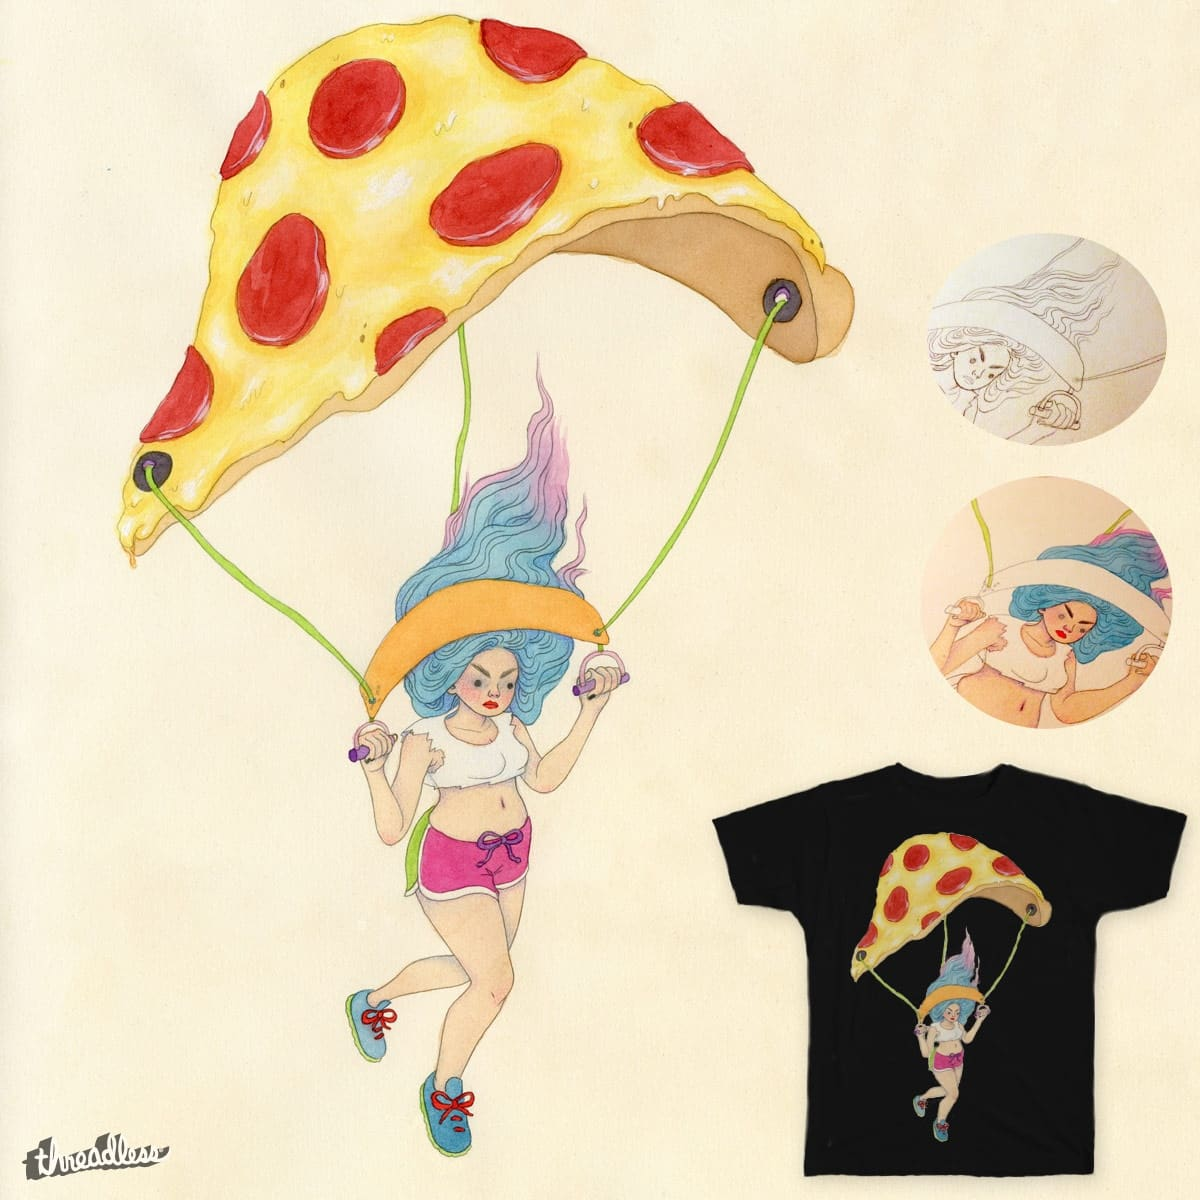 Pizza-chute by wishcandy on Threadless